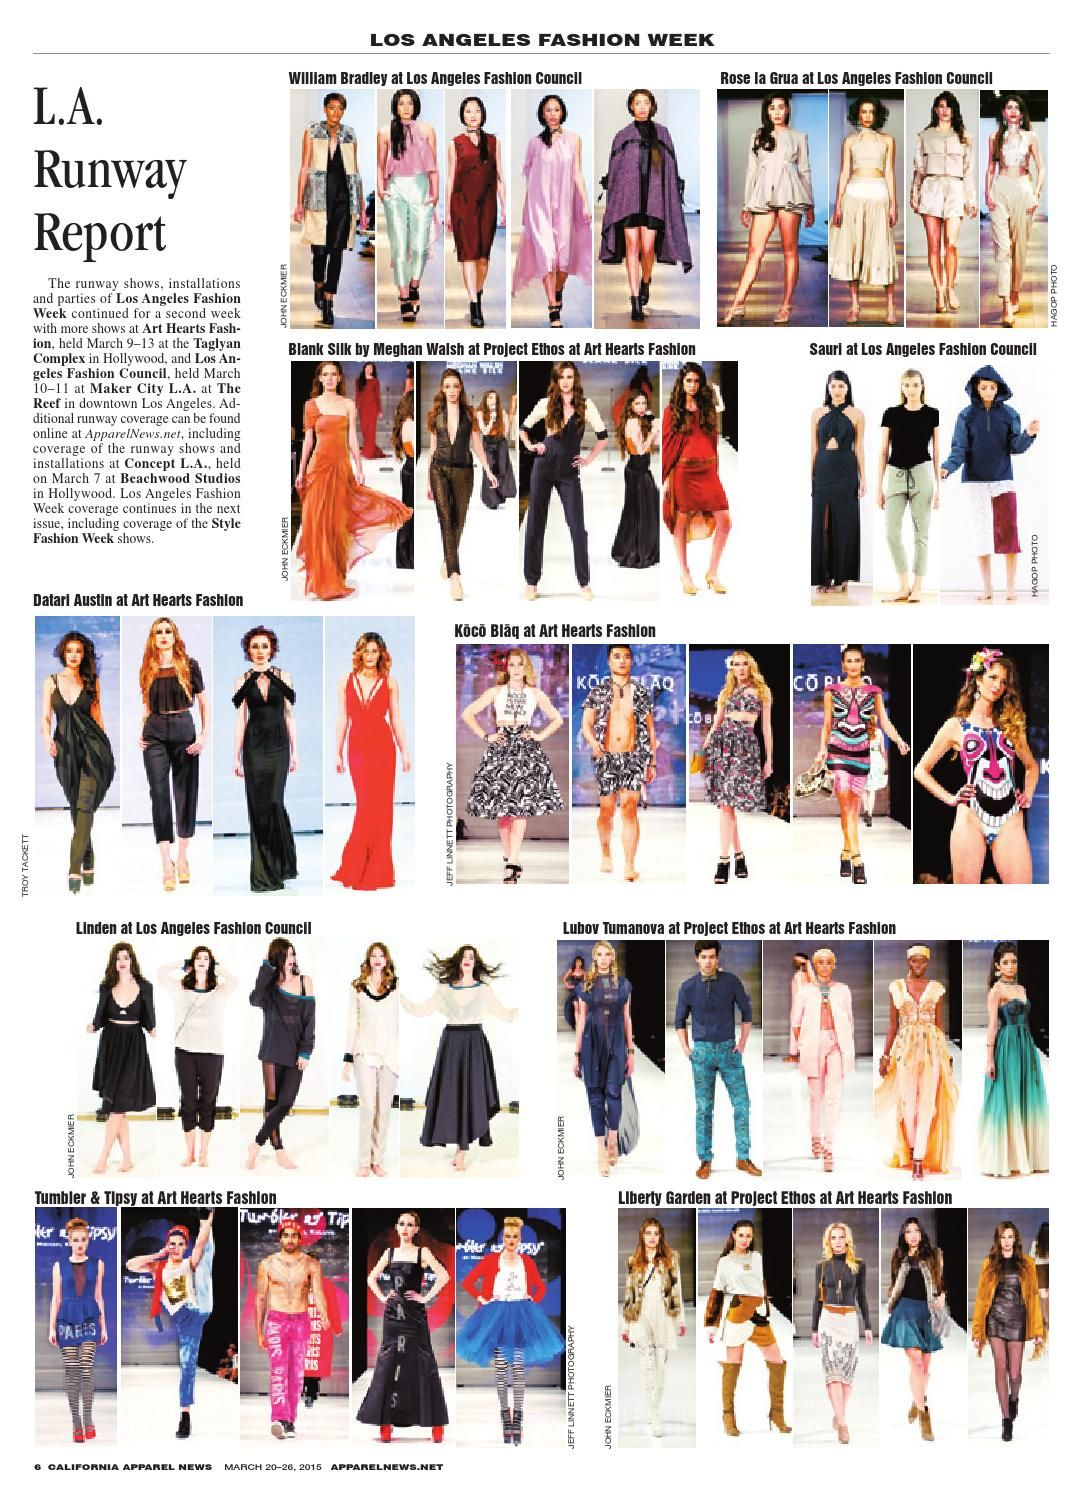 California Apparel News, Print Edition, March 20, 2015  Los Angeles Fashion Week, CALA, LA Market, American Apparel Resolves Lawsuit, and More Fashion Industry News.